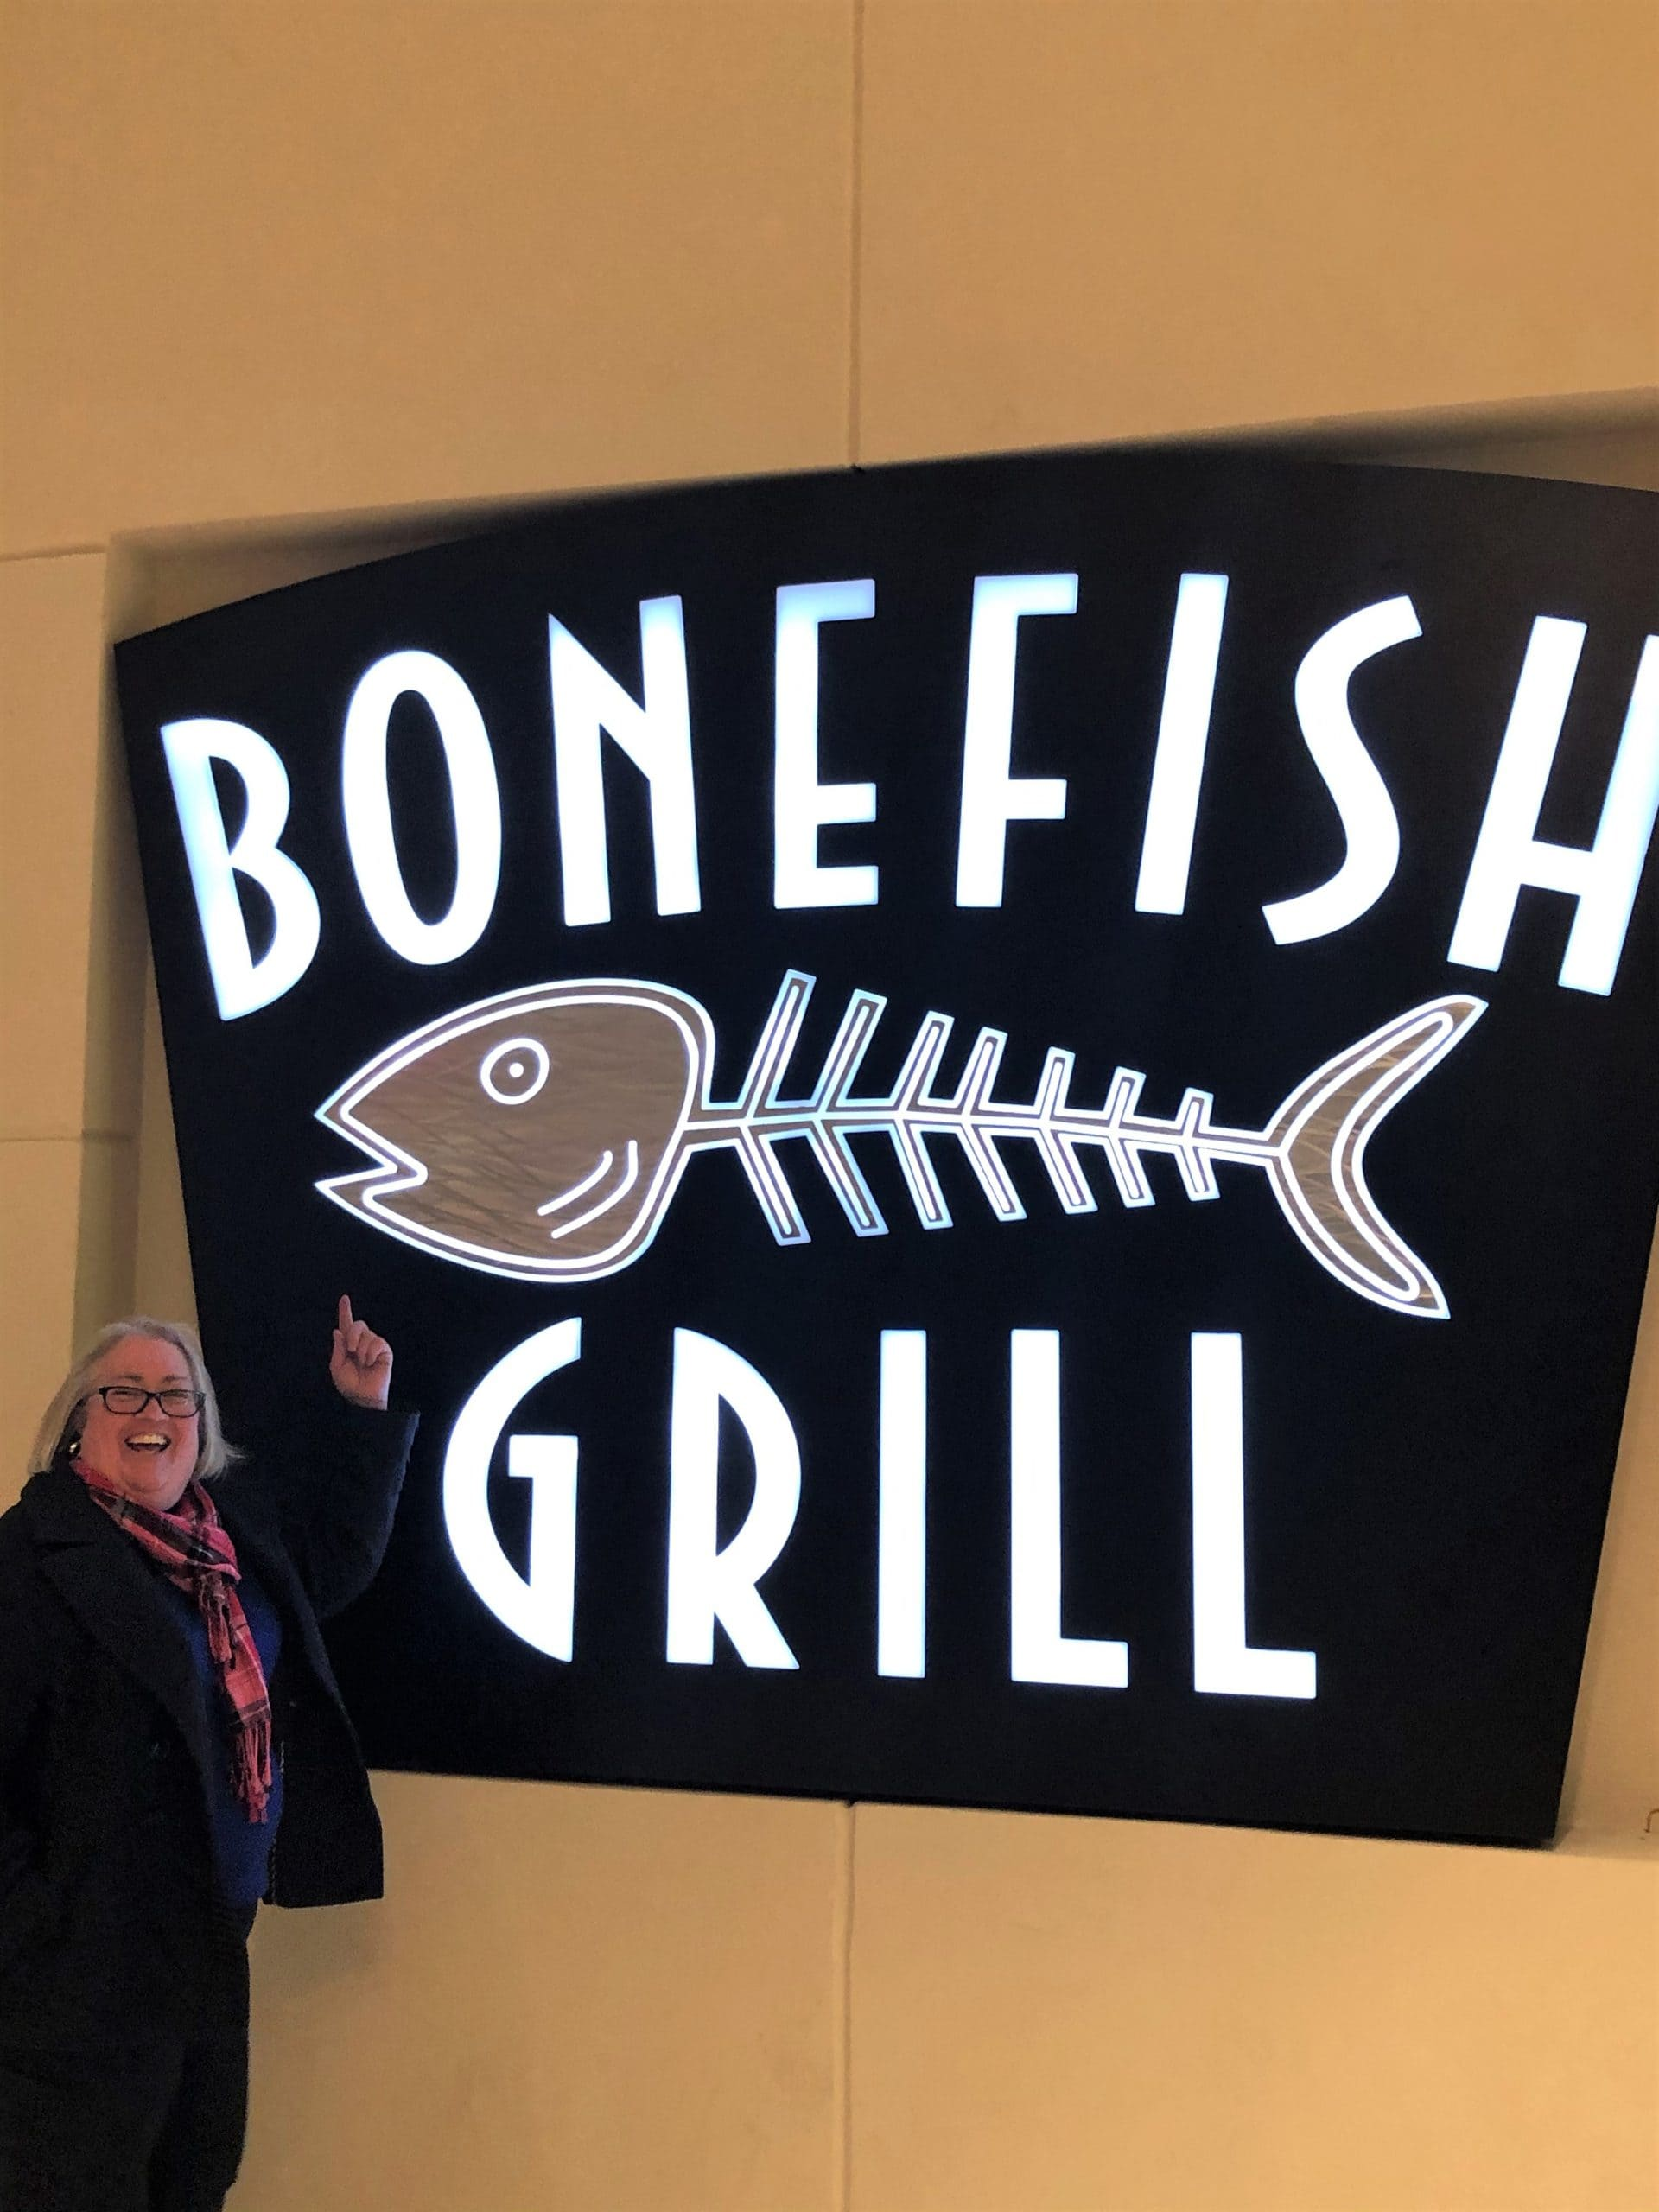 Bonefish Grill Restaurant in King of Prussia Mall